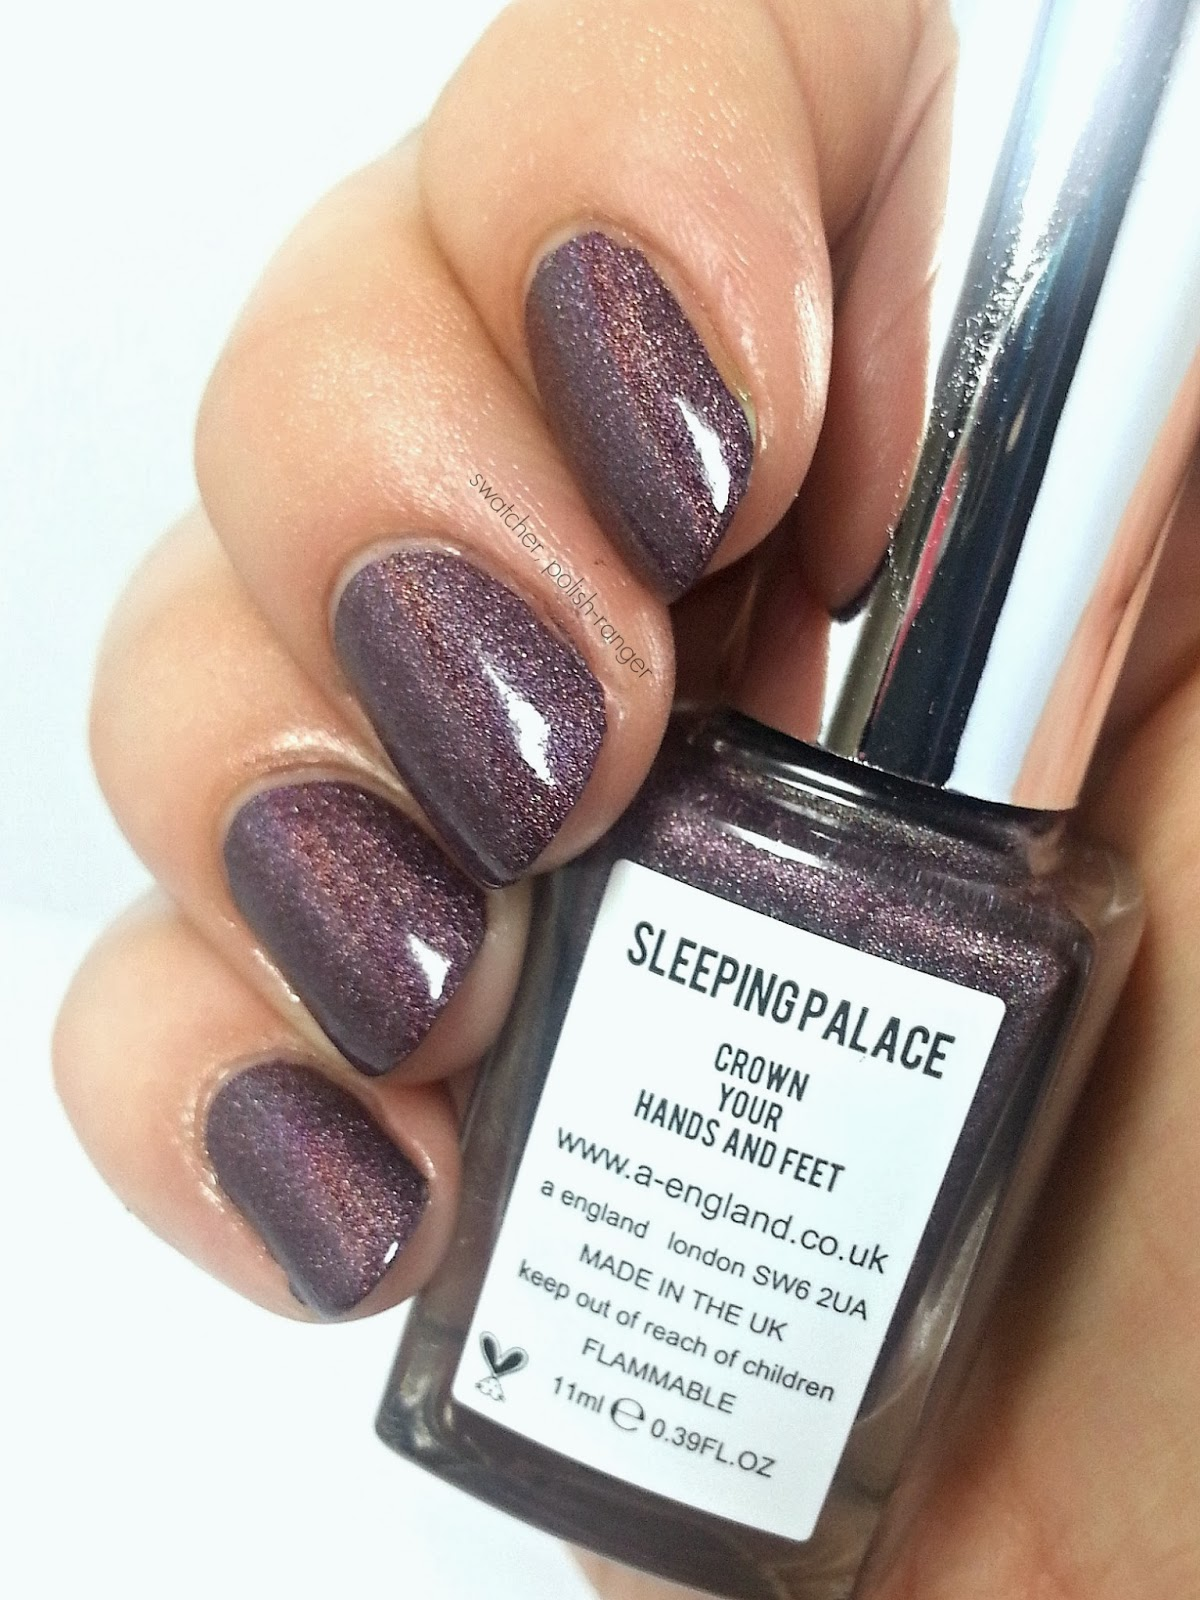 a-england Sleeping Palace swatch